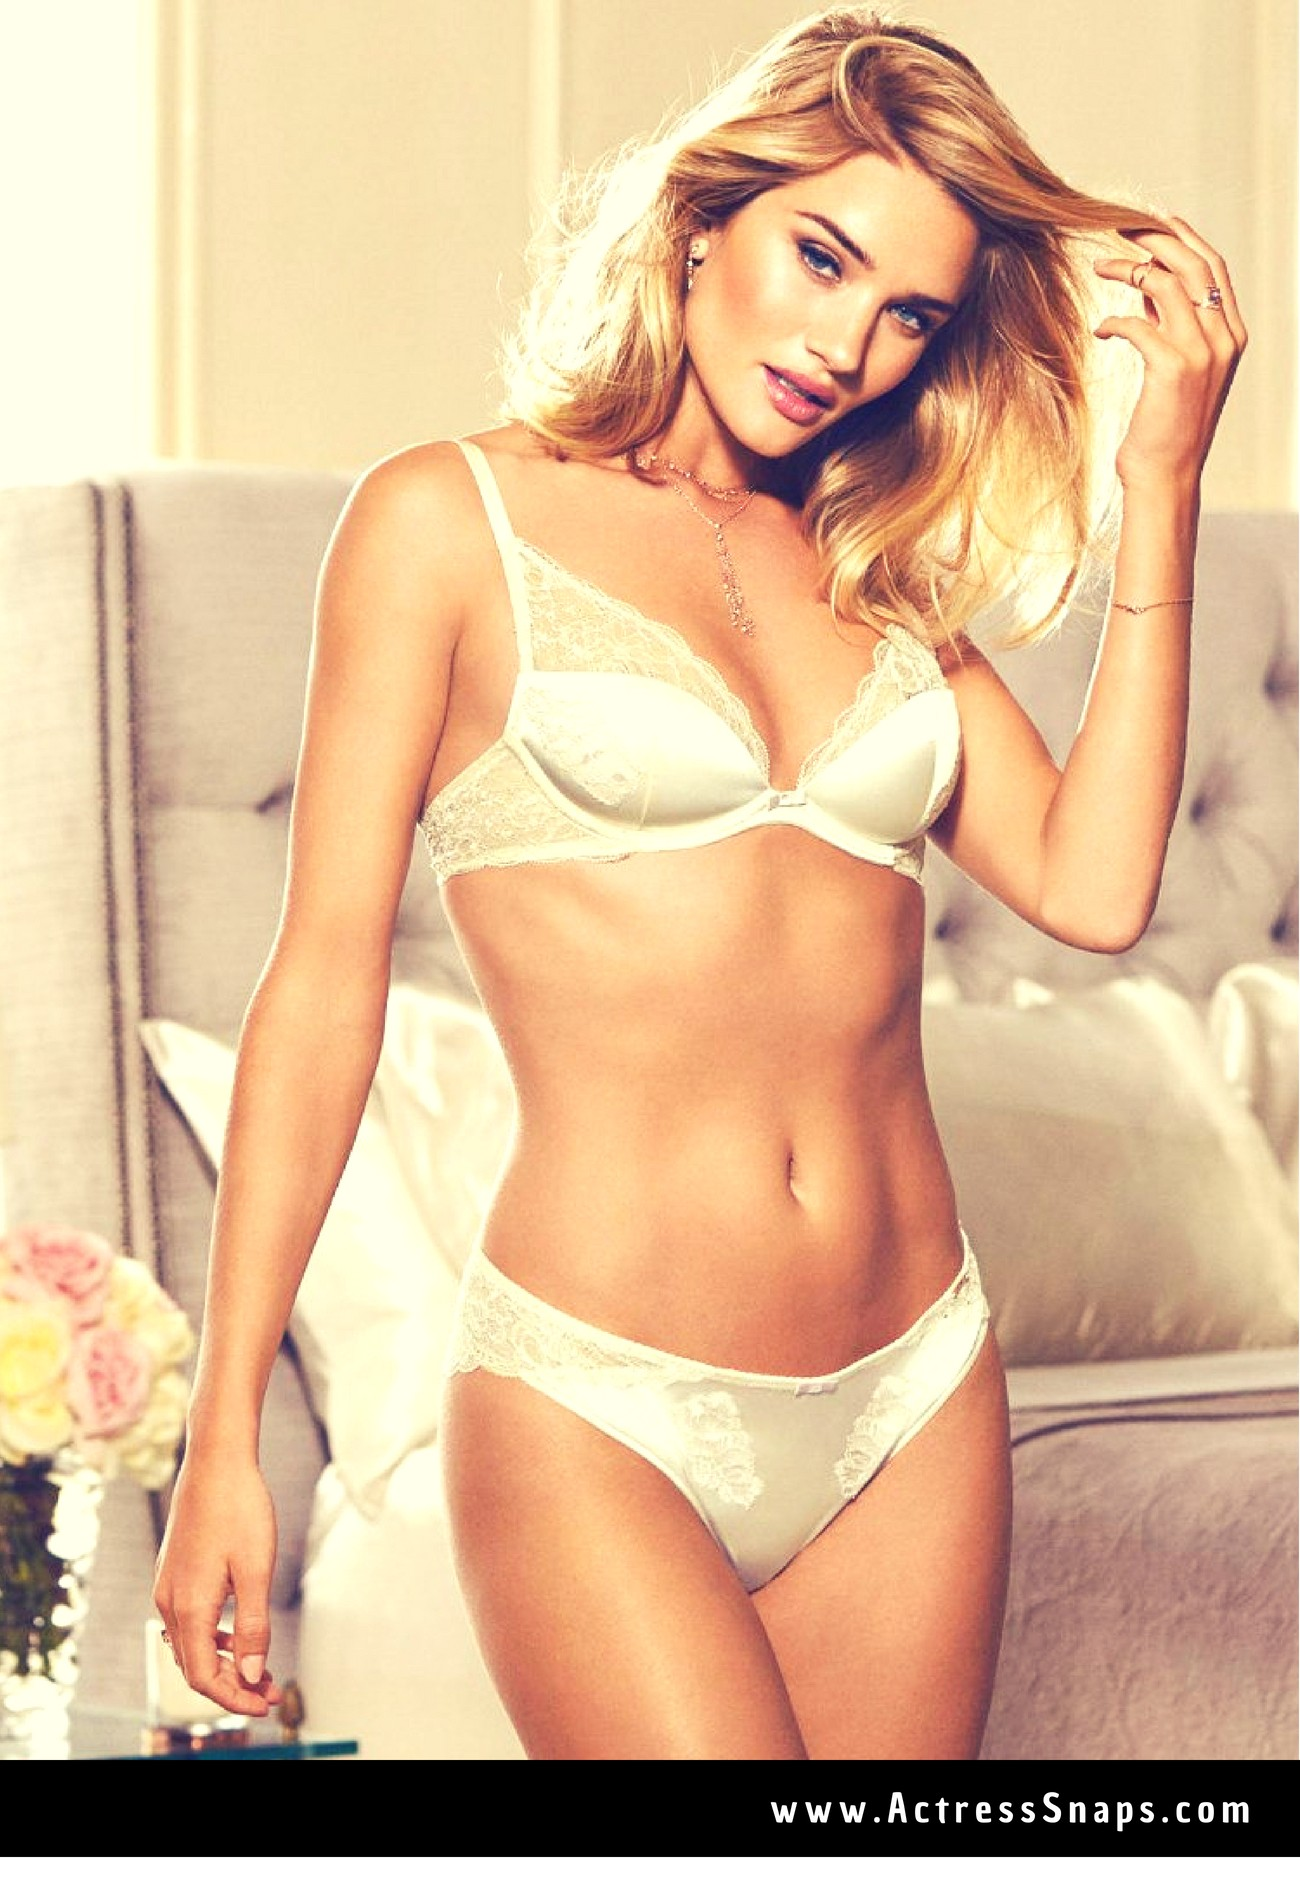 Rosie Huntington-Whiteley Sexy Lingerie Collections - Sexy Actress Pictures | Hot Actress Pictures - ActressSnaps.com